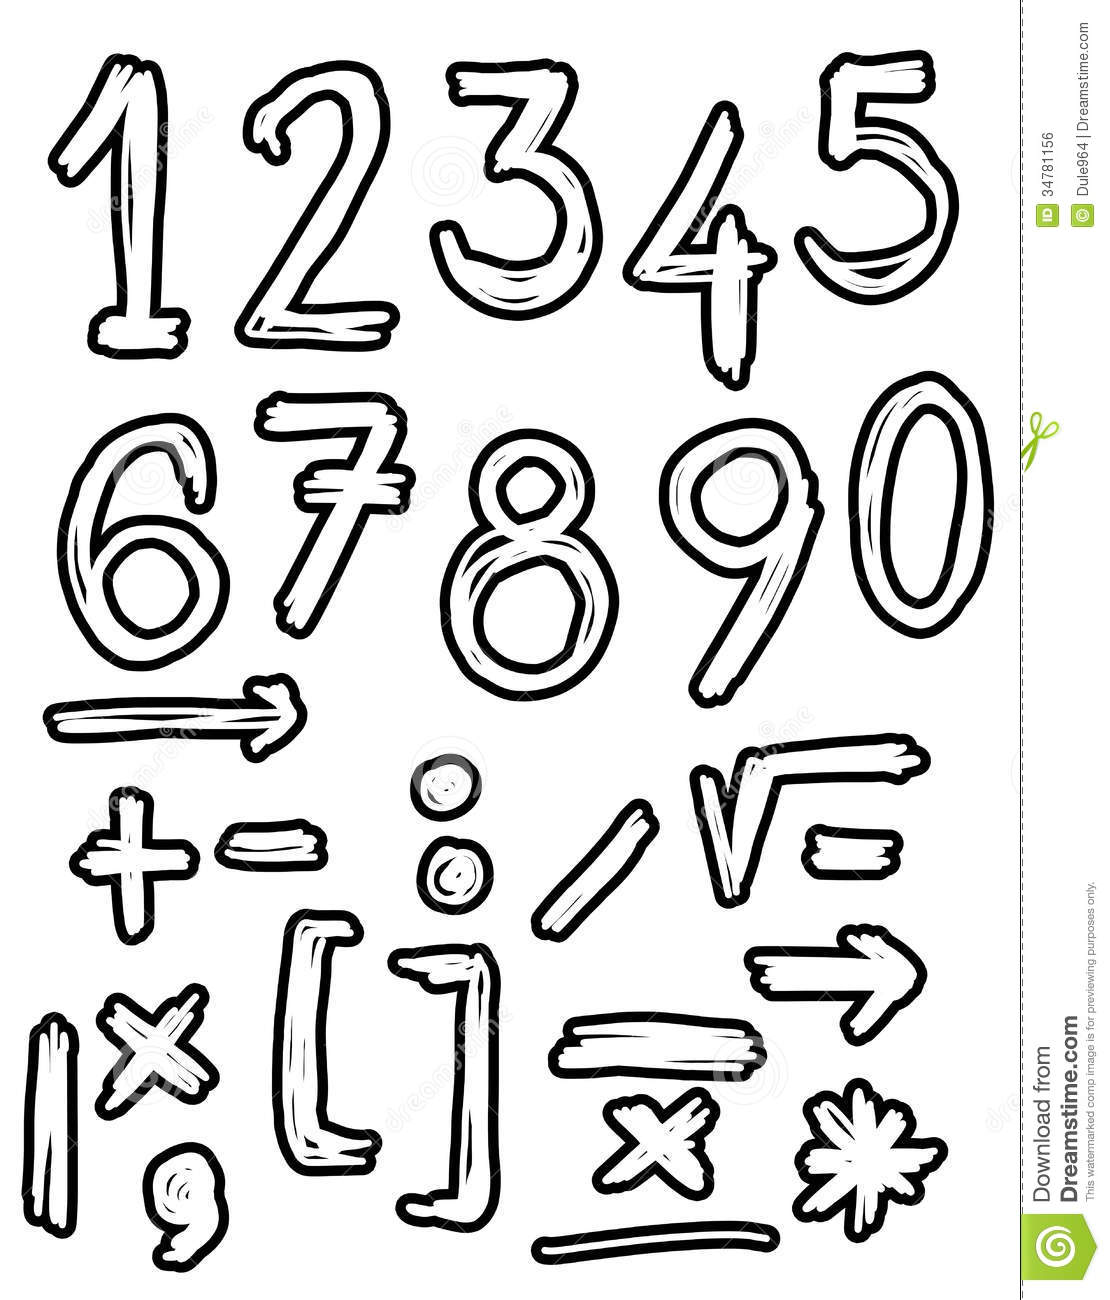 Hand Drawn Numbers Doodles Royalty Free Stock Image